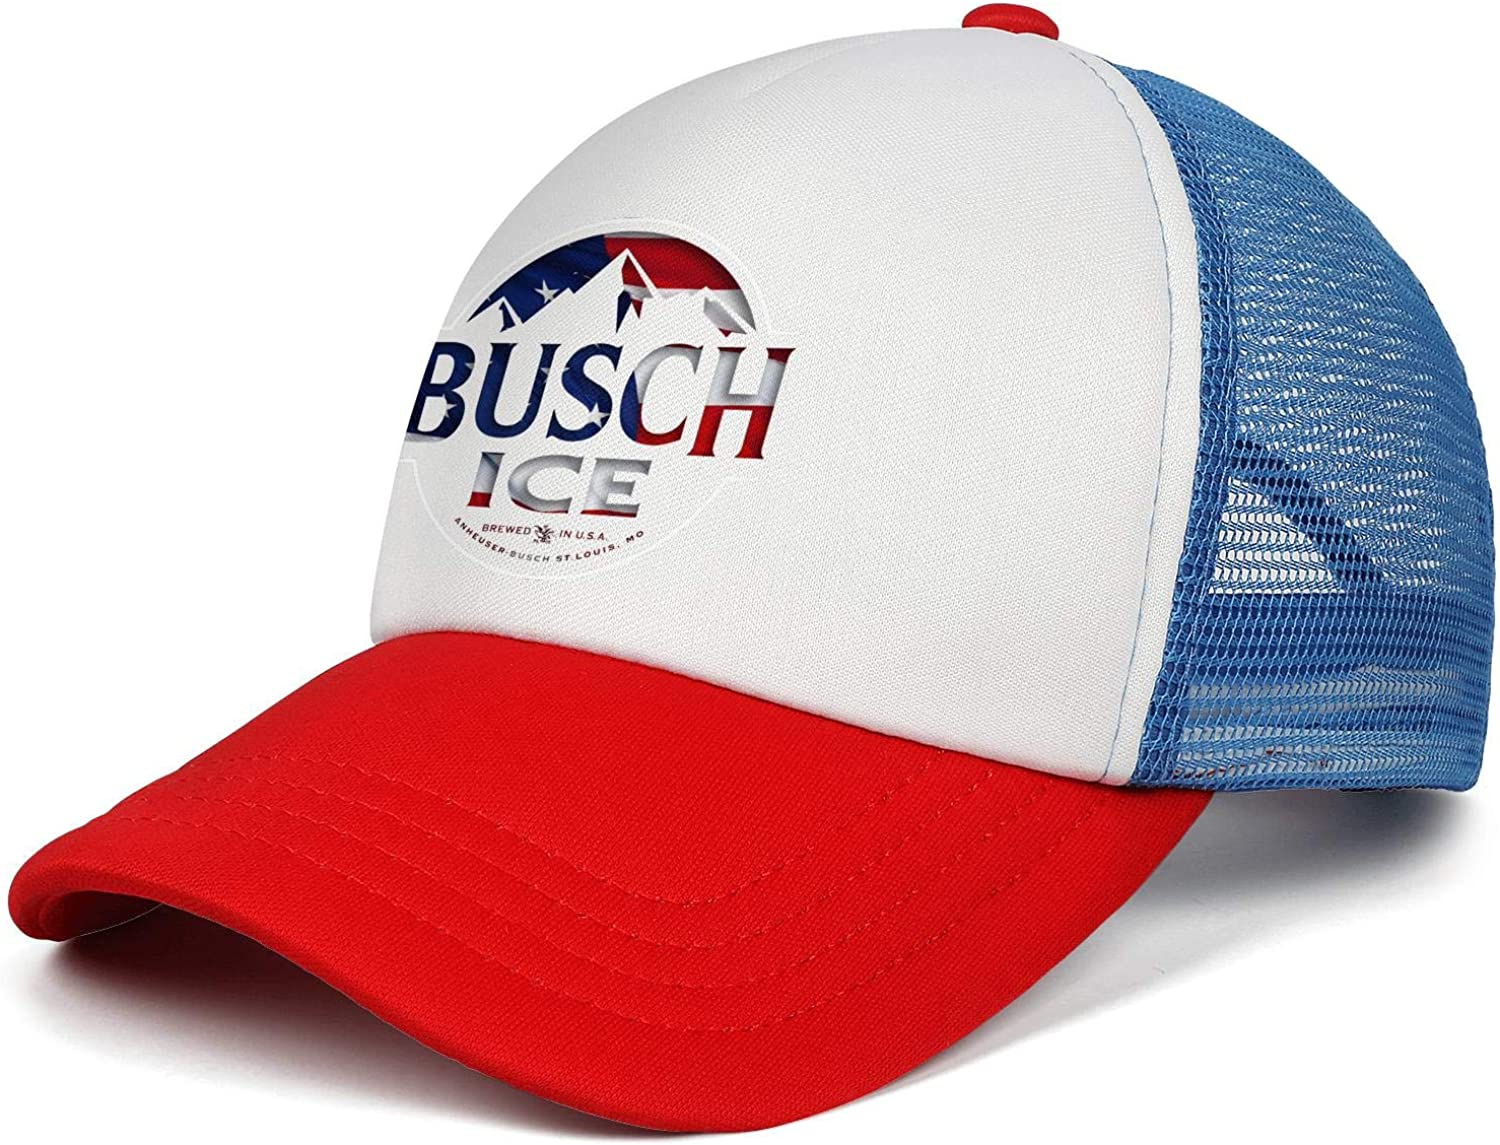 Adjustable Hip Hop Flat-Mouthed Baseball Caps EUYK77 Trump 2020 4 Mens and Womens Trucker Hats